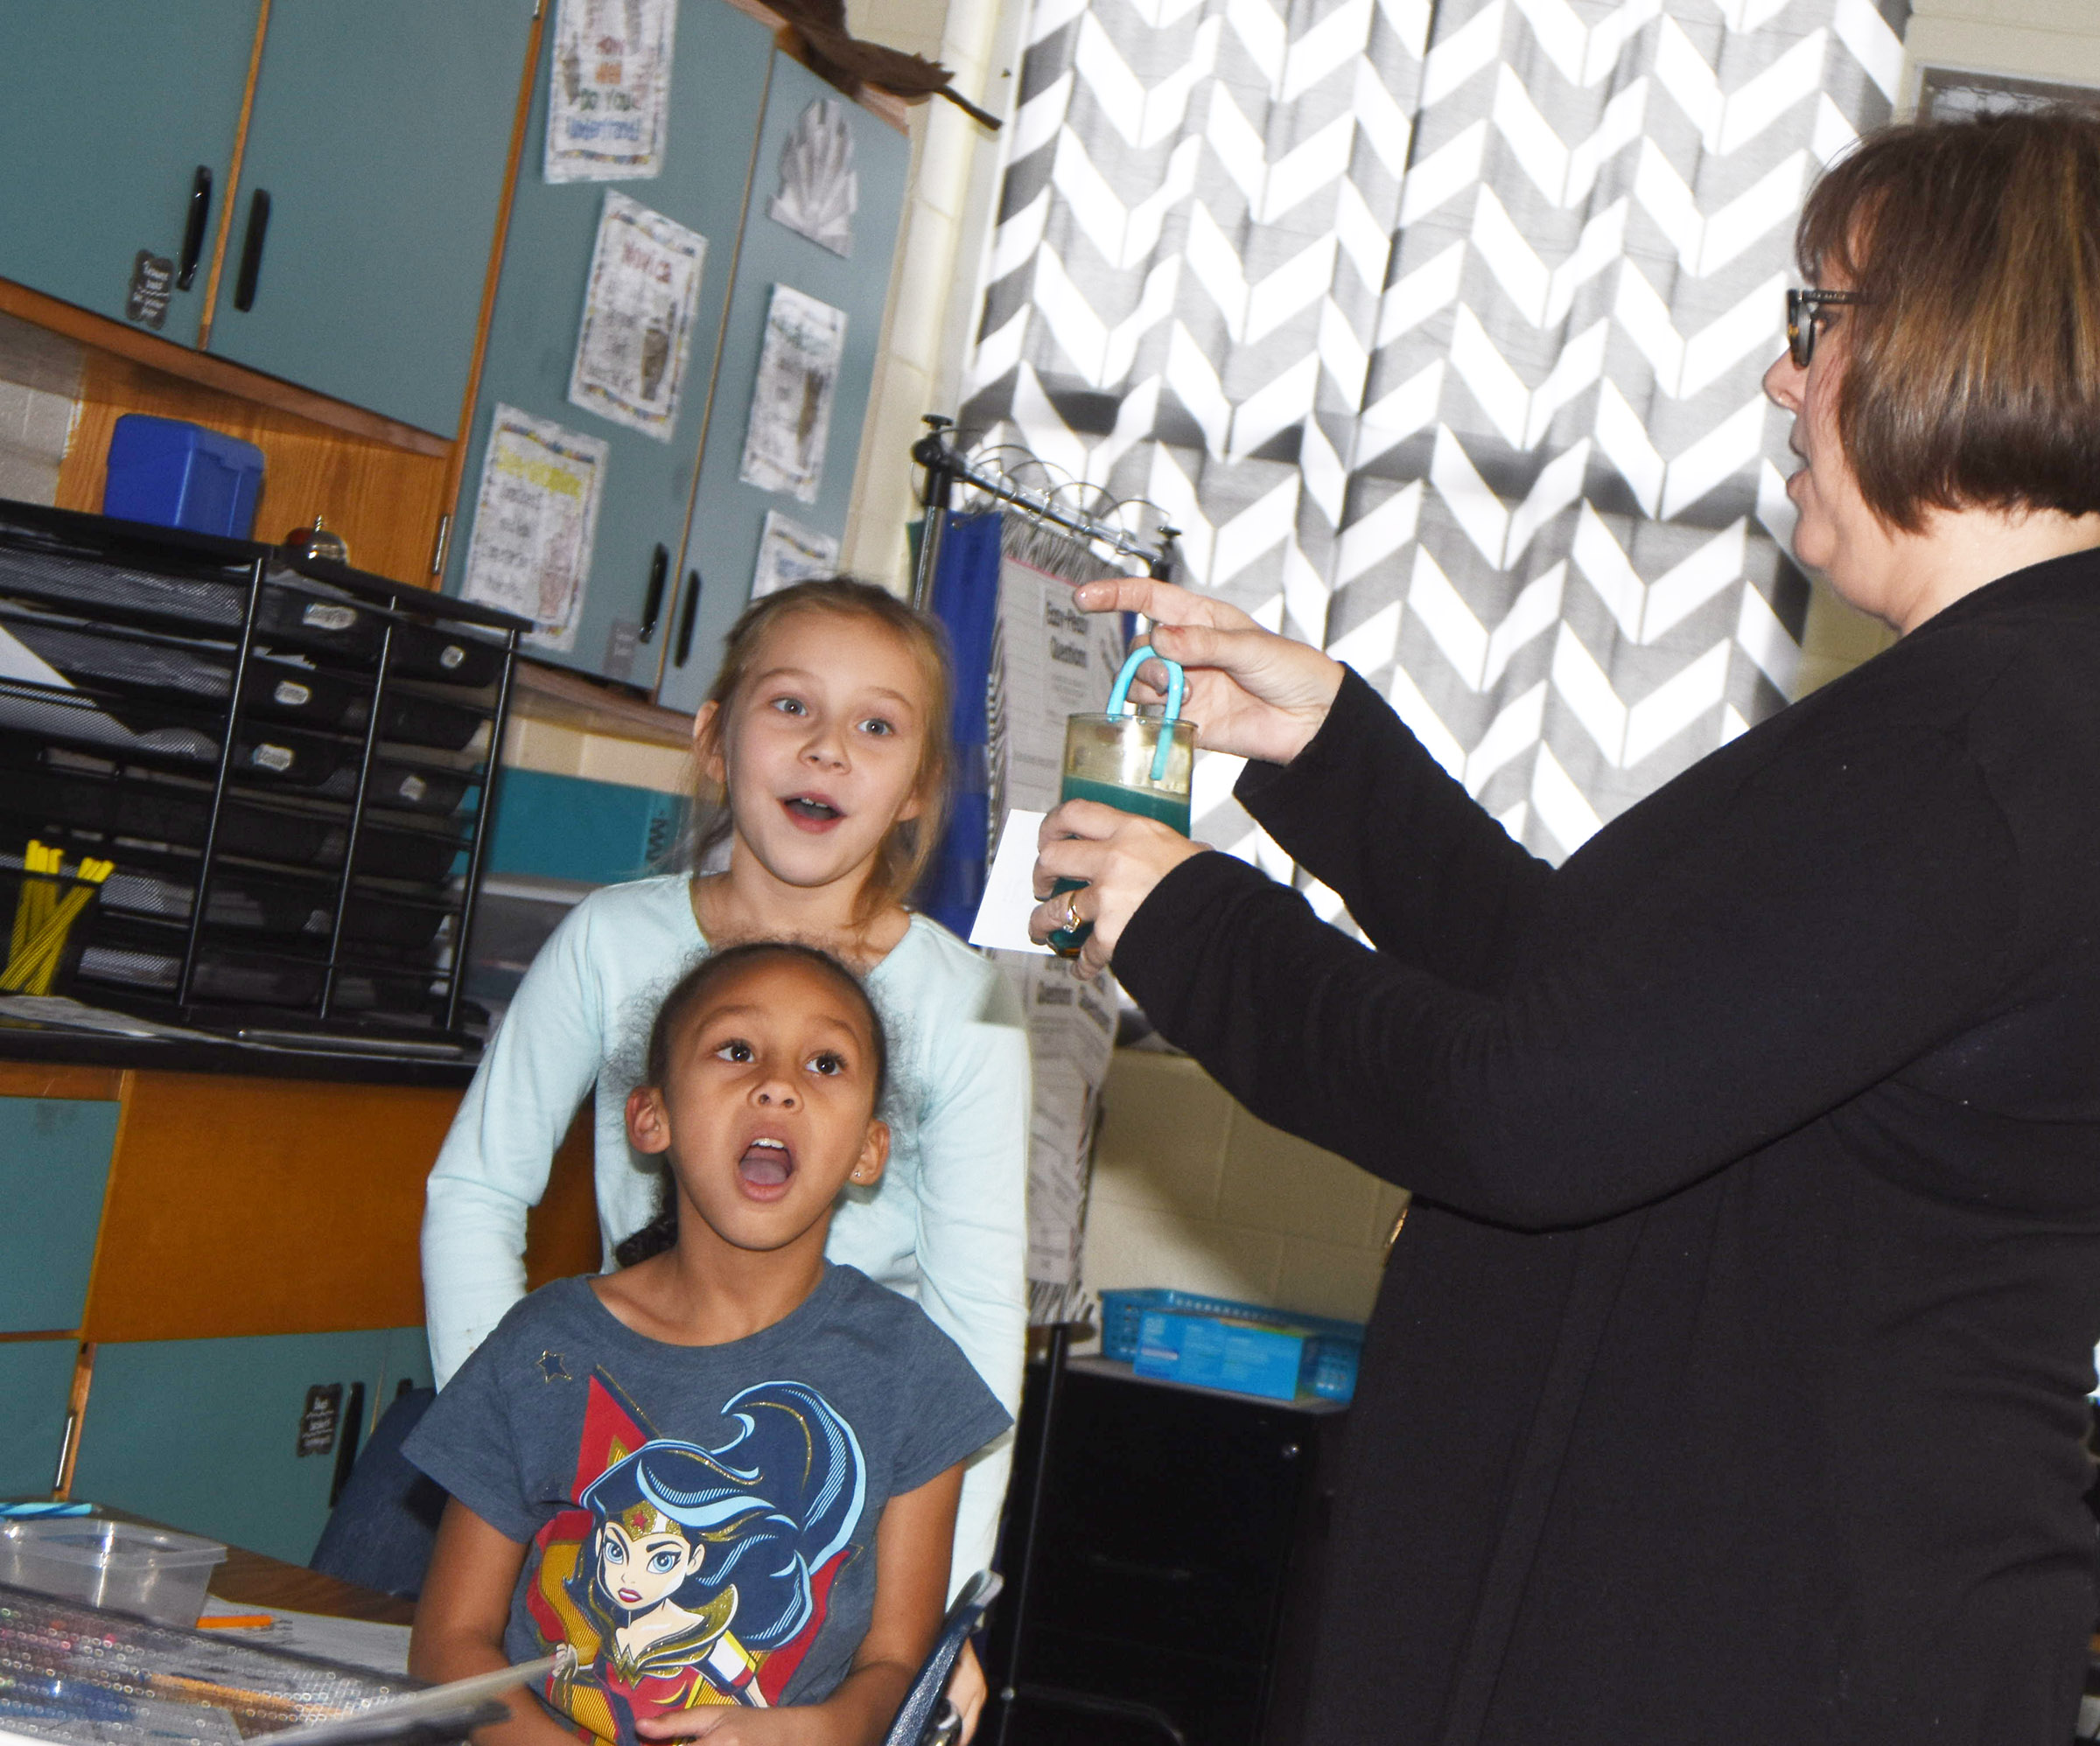 CES second-grade teacher Lynne Horn places a candy cane in vinegar to show her students the reaction. Pictured are Elyzabeth Fisher, in front, and Kira Dotson.